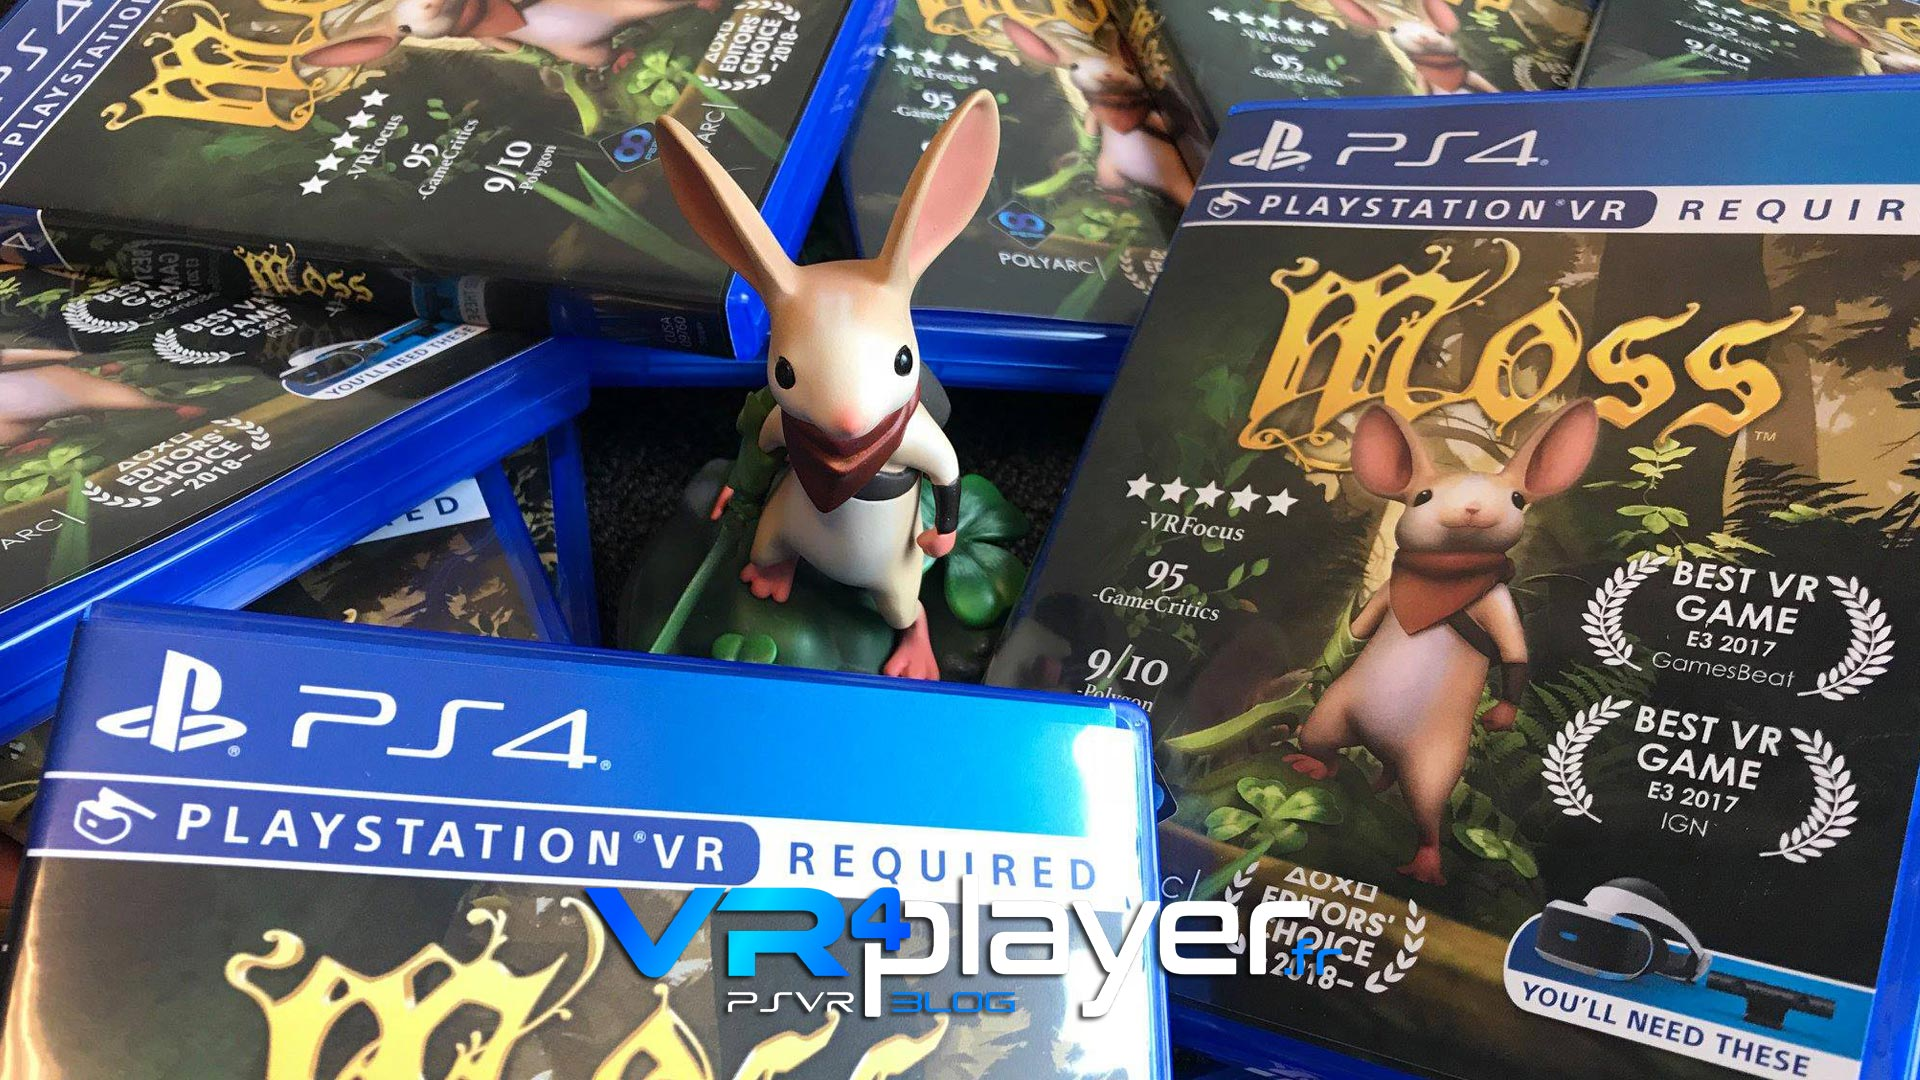 une figurine Moss à gagner vr4player.fr